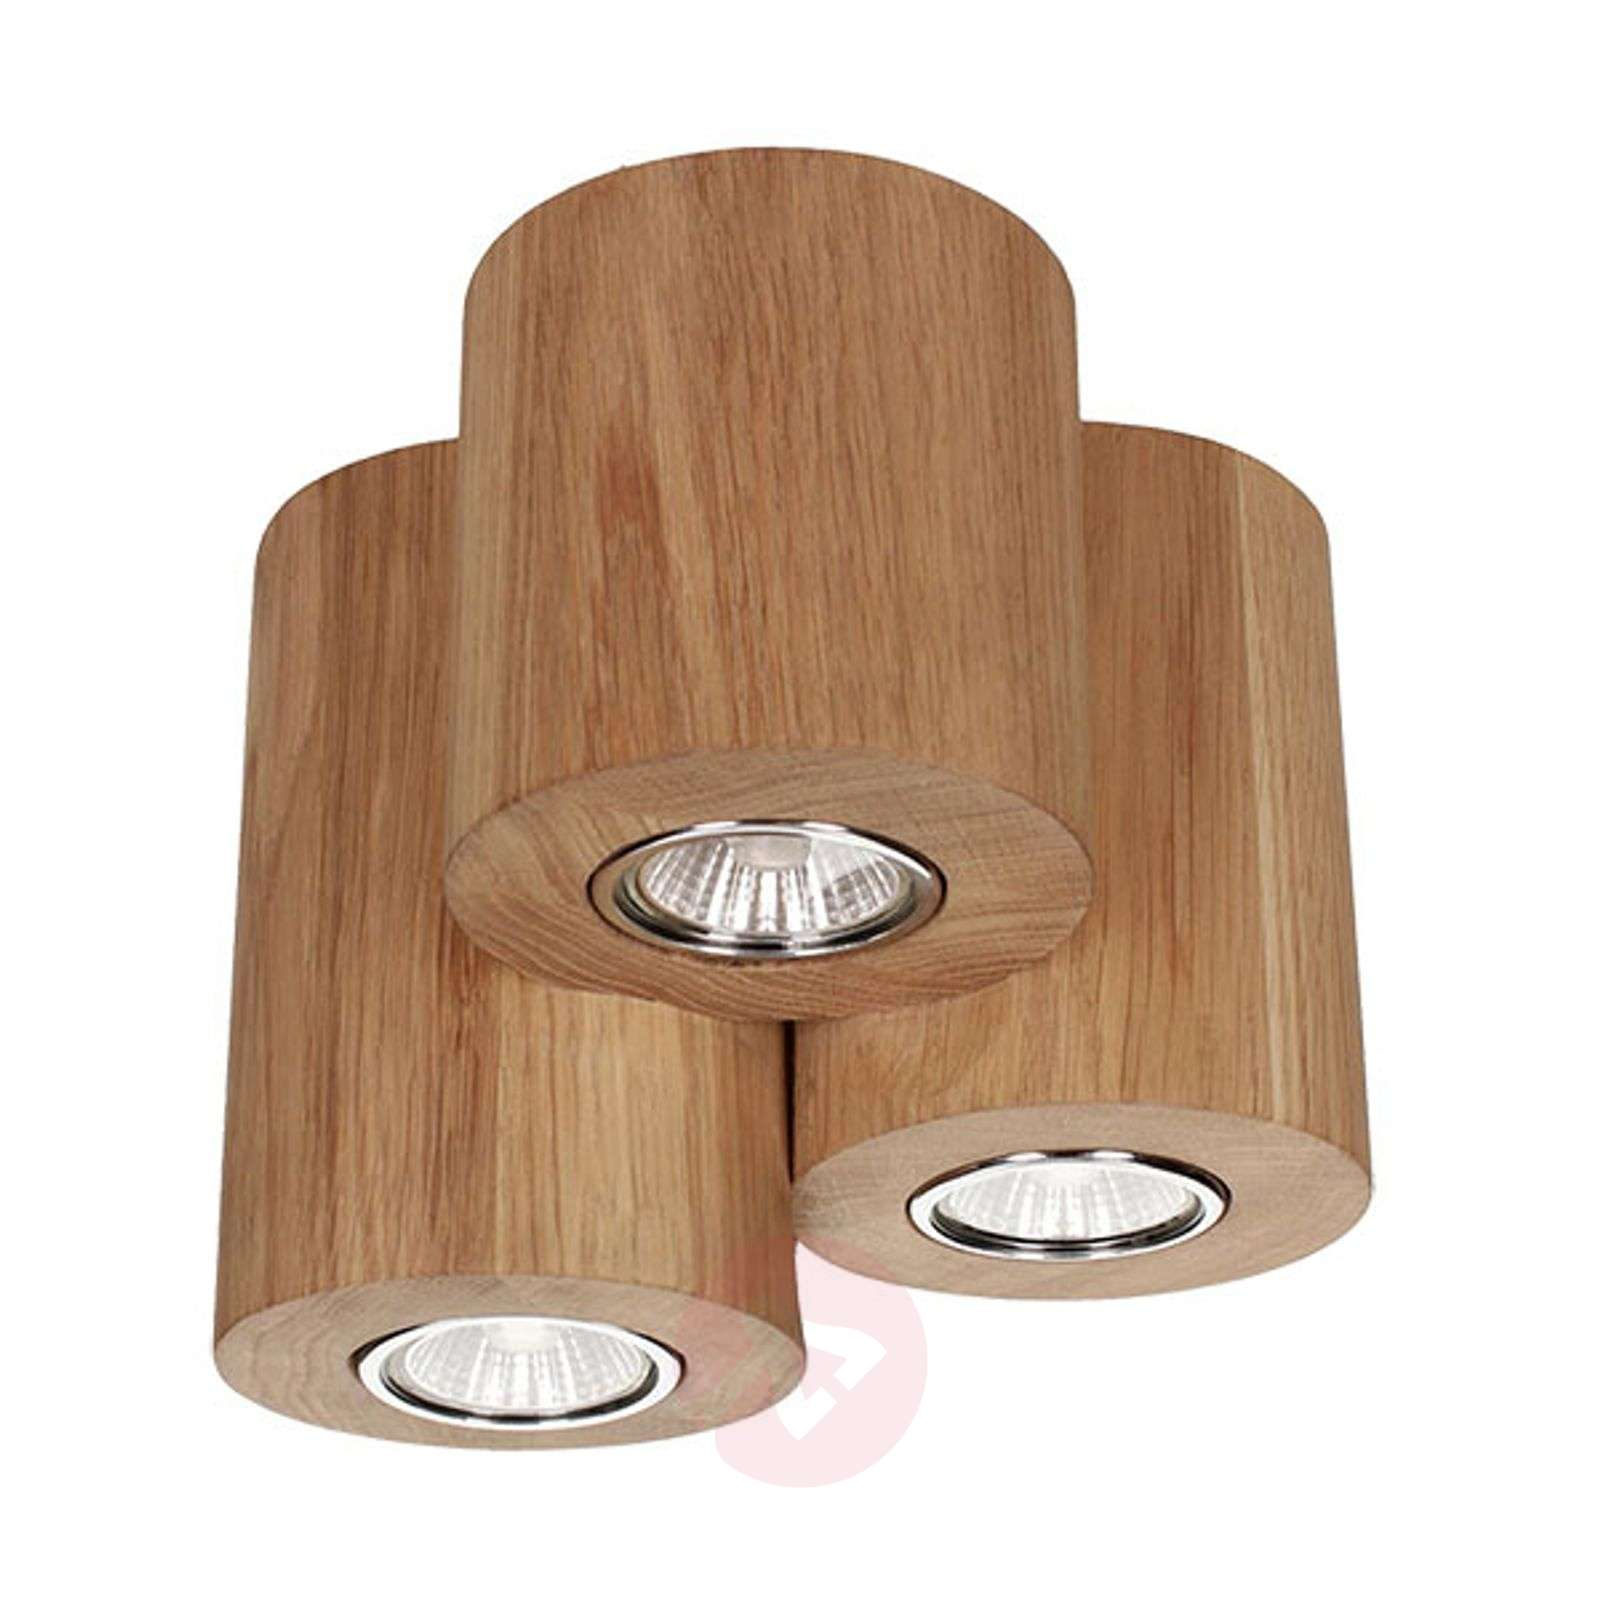 3-punktowa lampa sufitowa LED Wooddream